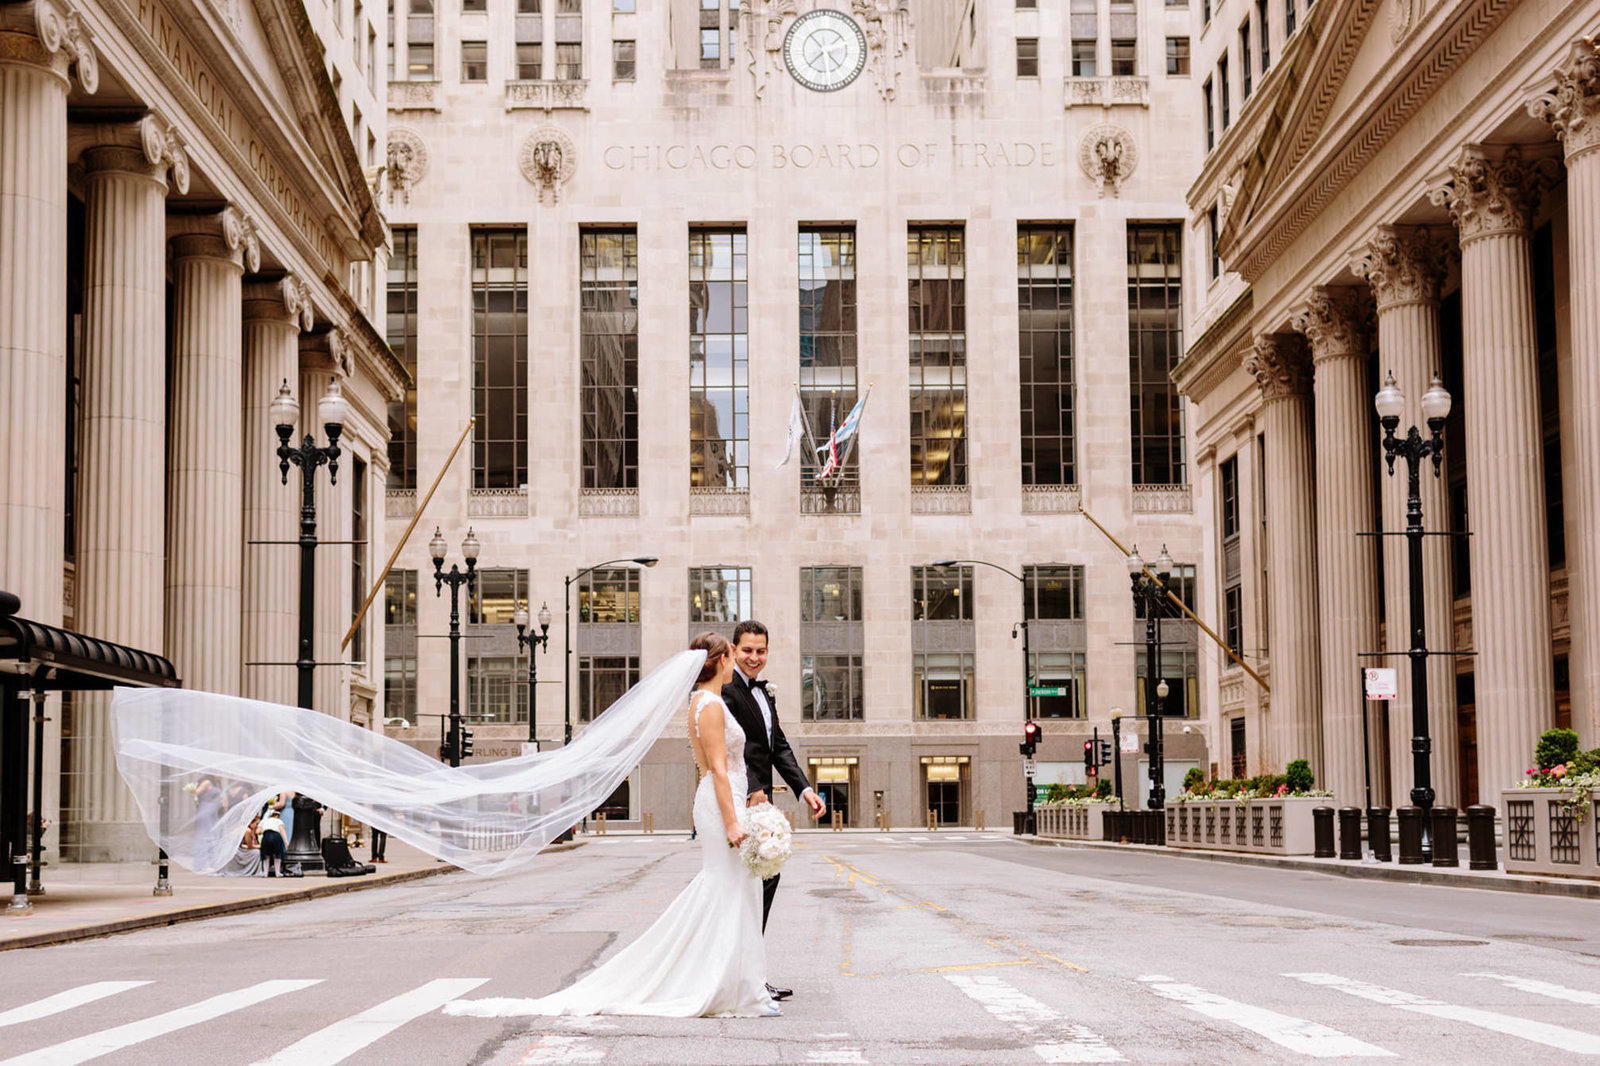 Board-of-Trade-Wedding-Chicago